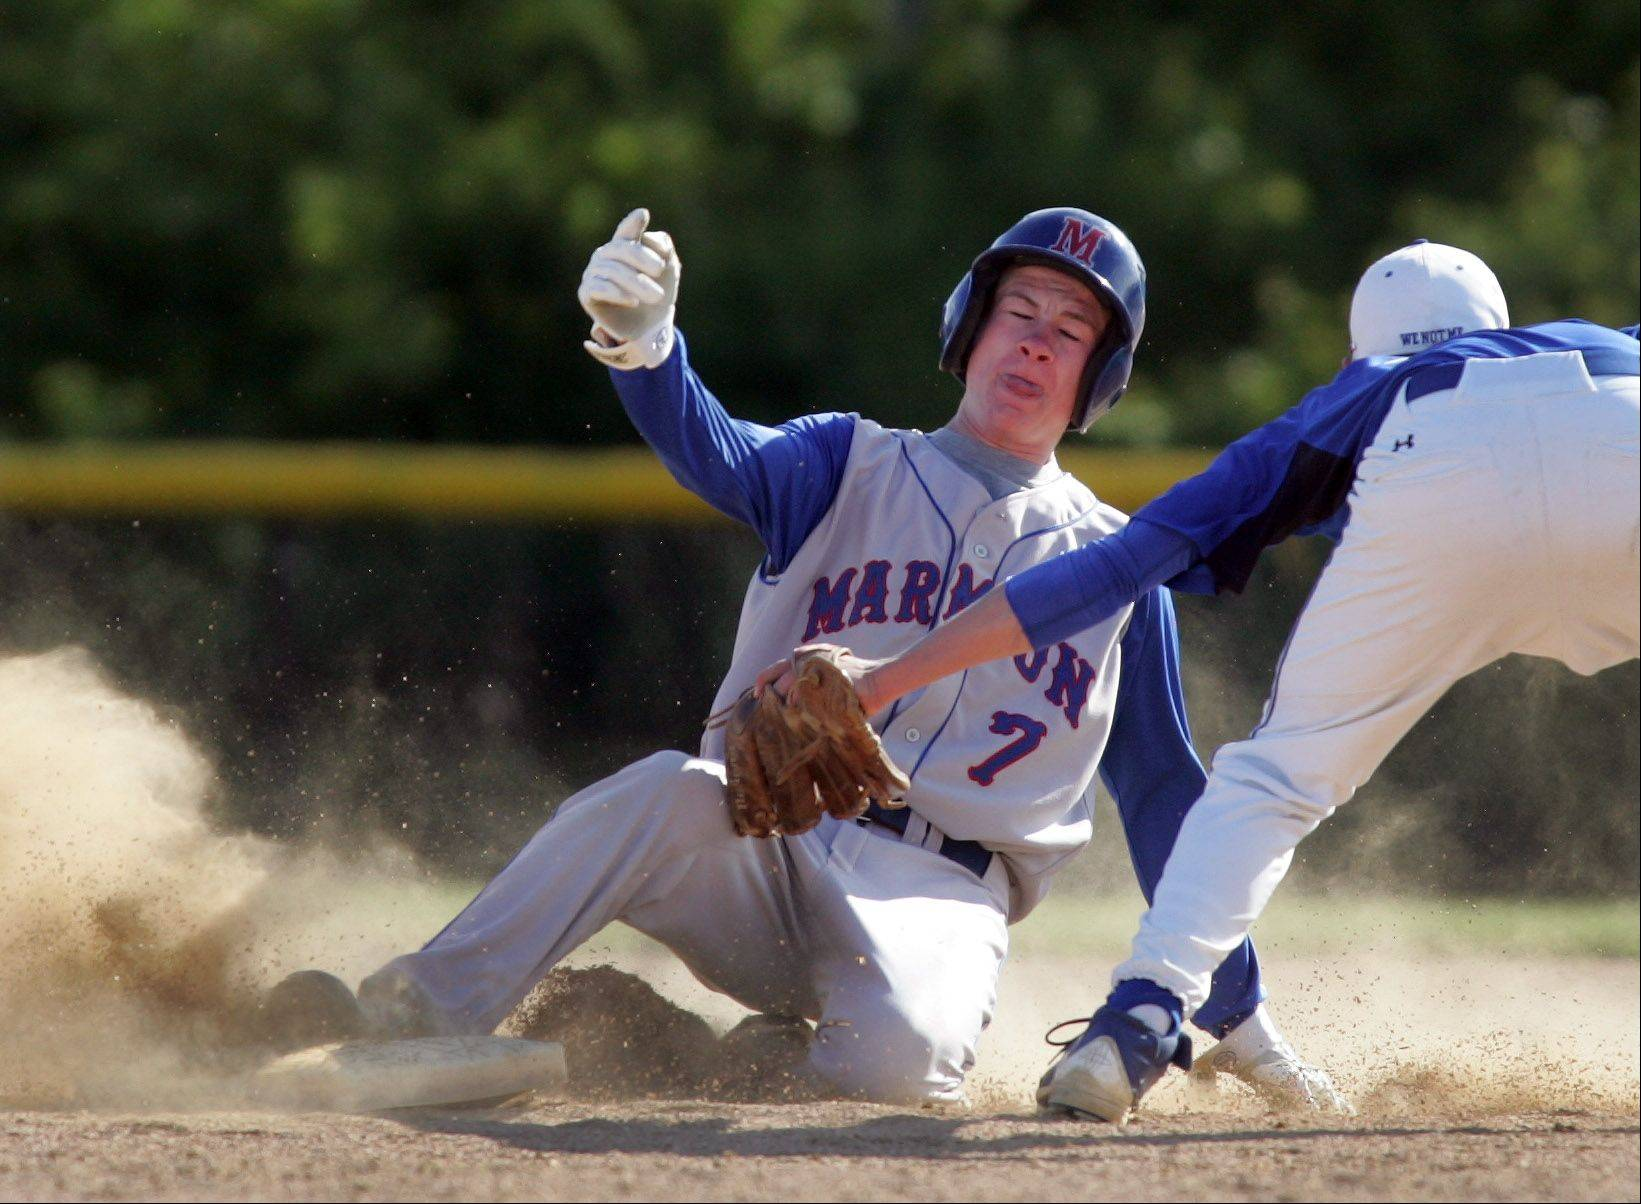 Mitch Sterne of Marmion Academy beats the tag of David Fisher, right, of St. Francis, as he slides into second base during baseball in Aurora on Monday.